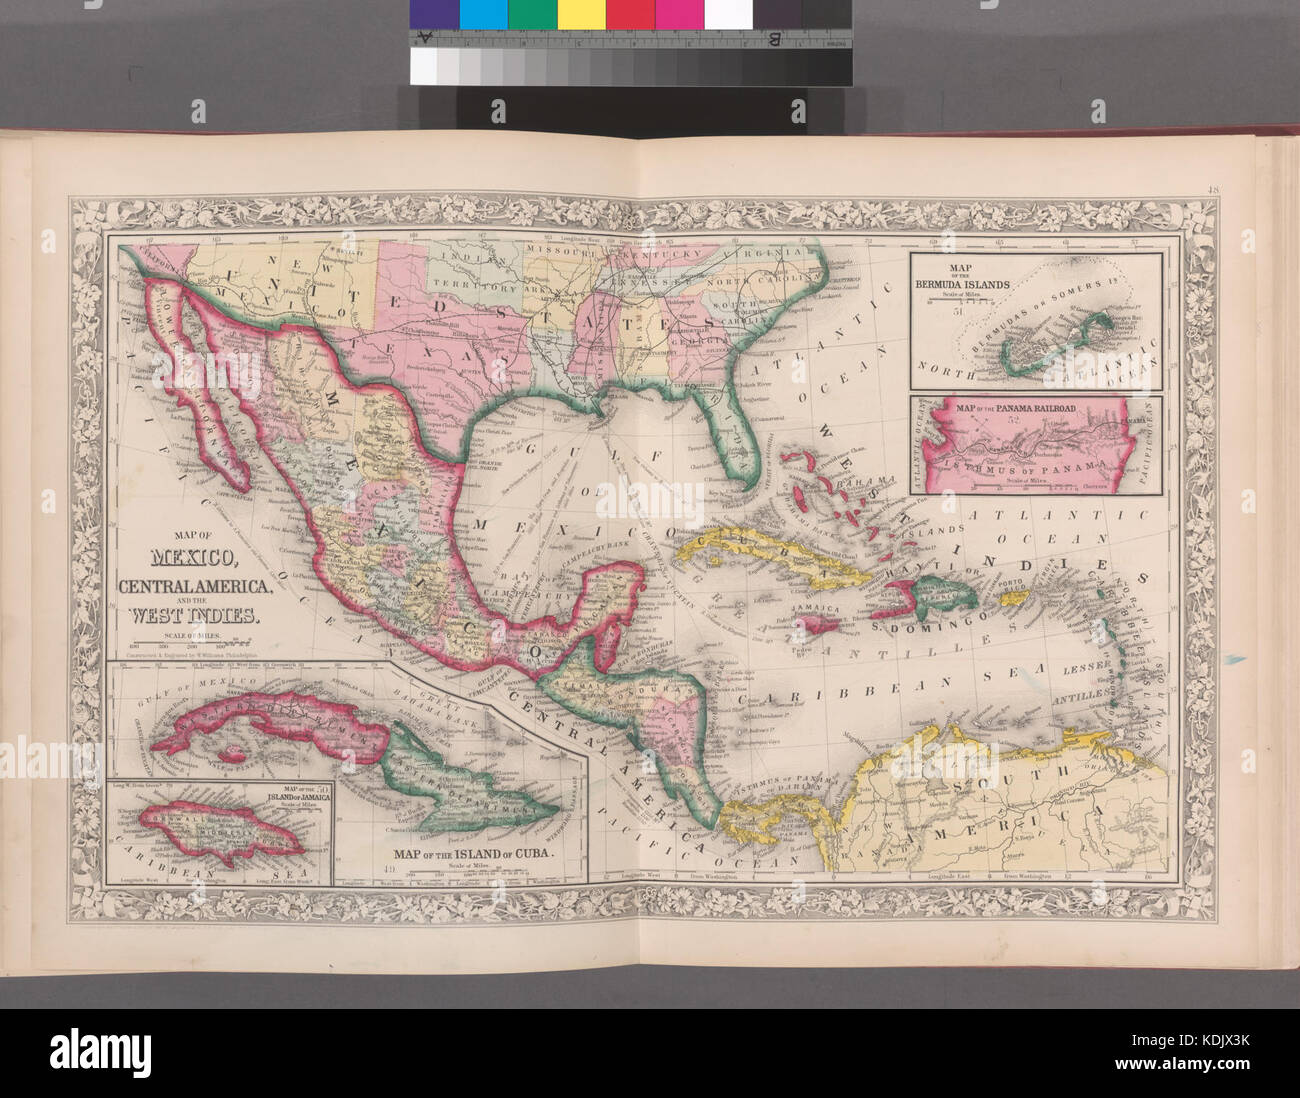 Old Map Of Jamaica Stock Photos Old Map Of Jamaica Stock Images - West indies central america 1763